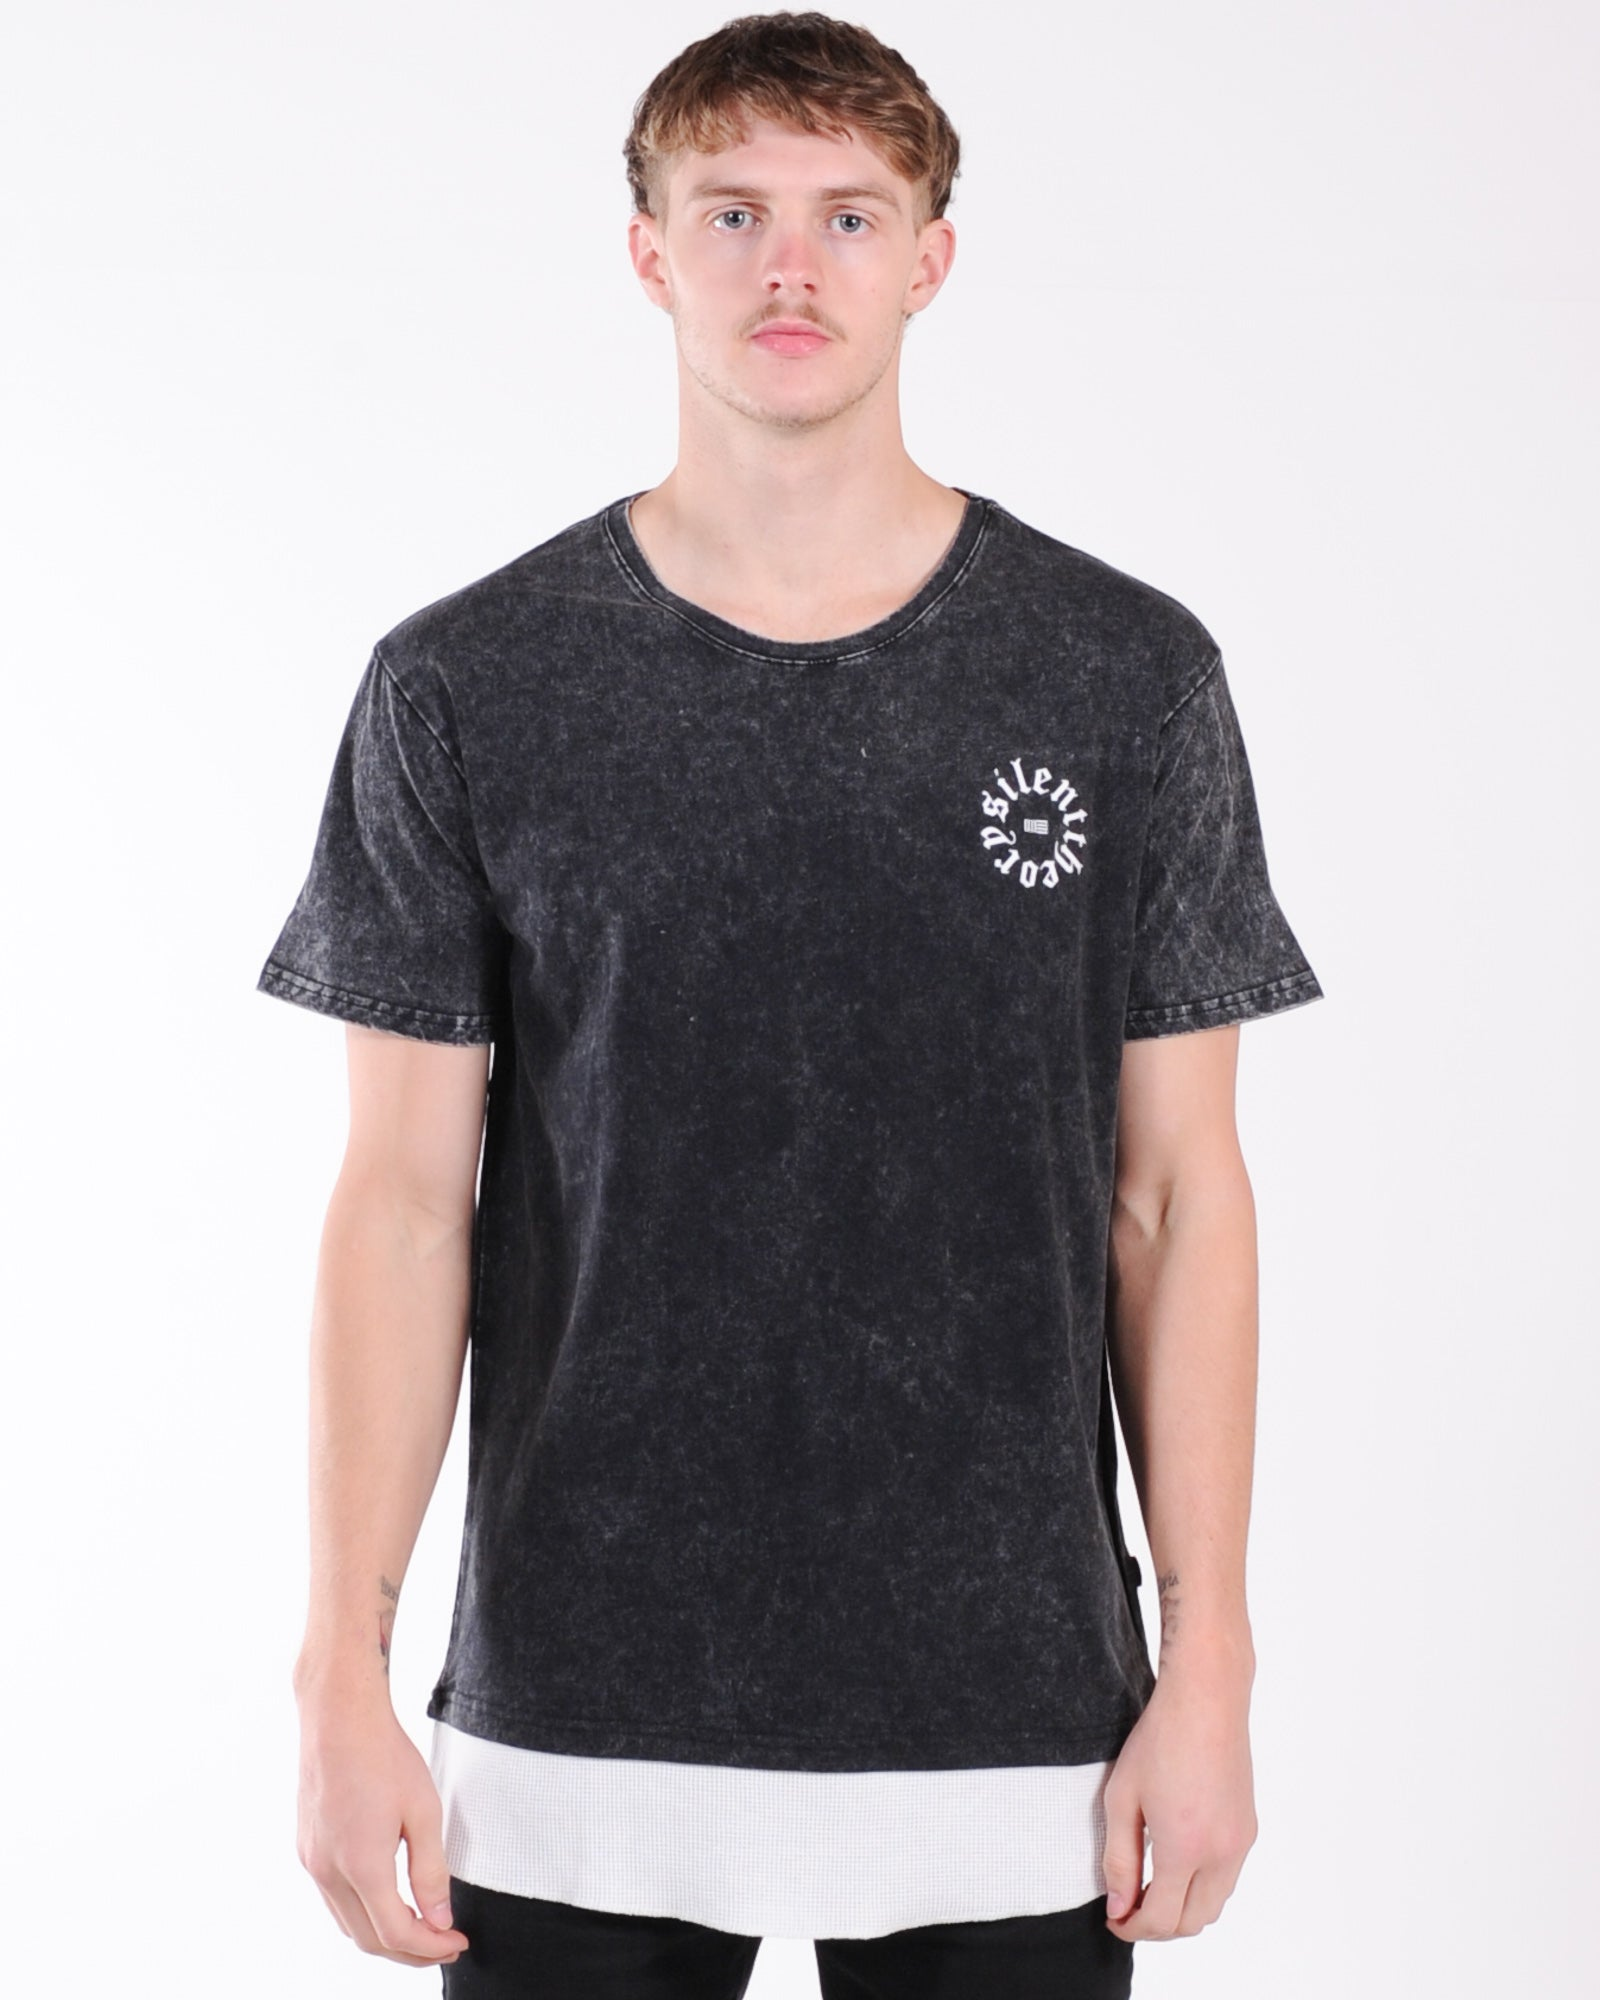 Silent Theory Grief Tee - Washed Black